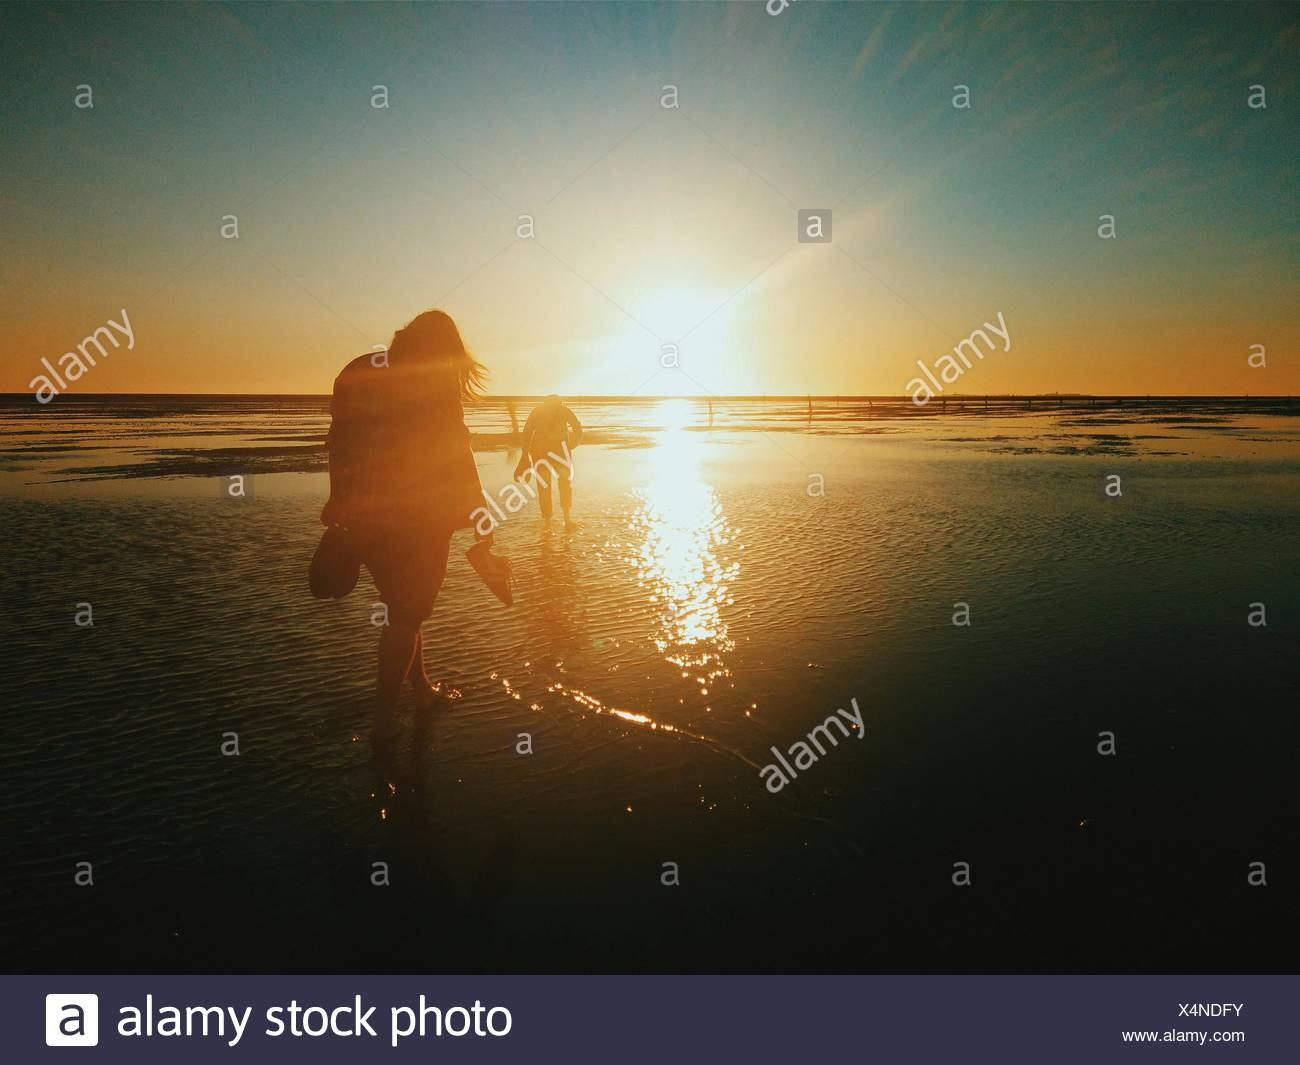 Silhouette People Walking On Beach At Sunset - Stock Image